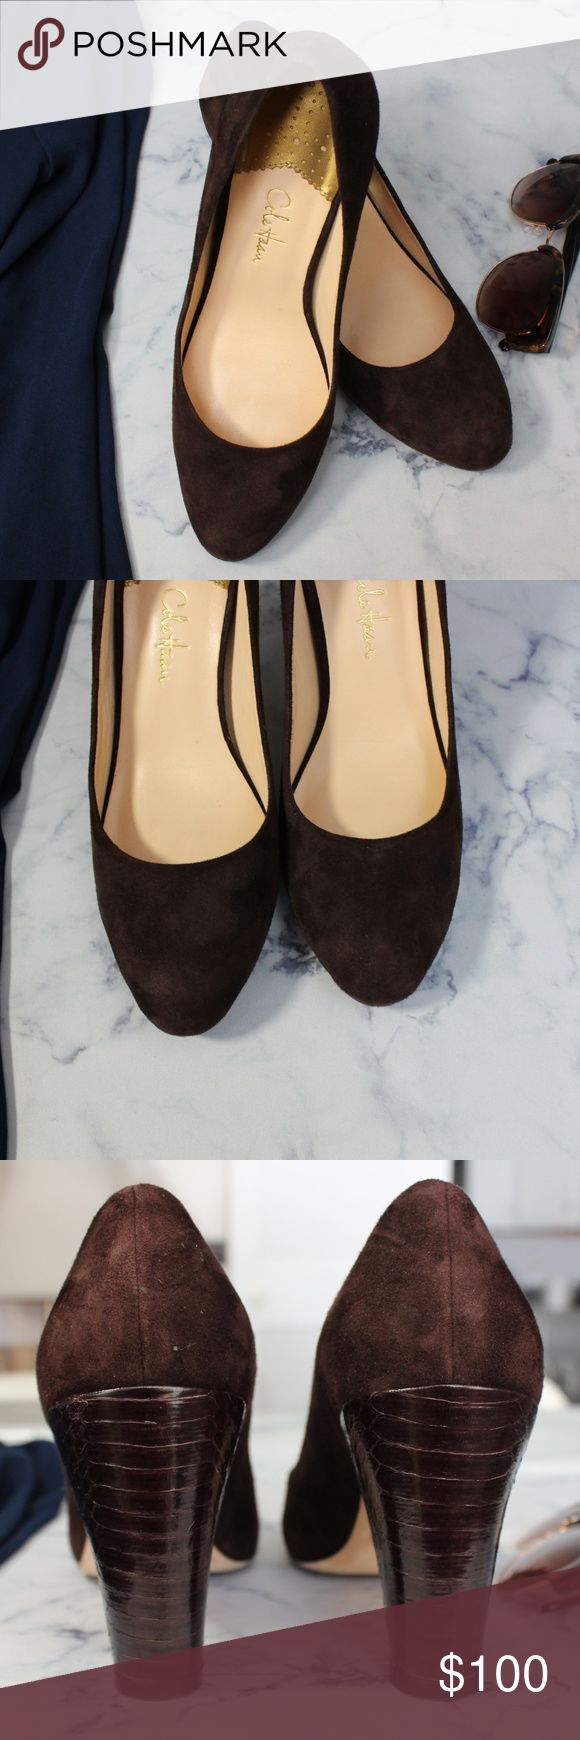 """Cole Haan Nike AIR Brown Suede Pumps Retail $200 Cole Haan Nike AIR Brown Suede Pumps Retail $200 Cole Haan Chocolate Brown Suede Pumps. Has the inbuilt Nike AIR technology to make these Pumps comfortable to walk in. Size: 7.5 Shoe Width: B (Medium)  Heel Height: 3 ½"""" Block heel snakeskin pattern leather in the same rich autumnal chocolate Material: Genuine Leather Outsole. Soft and supple Suede upper Color: Chocolate Brown Reviews state: True to fit.  Condition: Like new. Excellent…"""